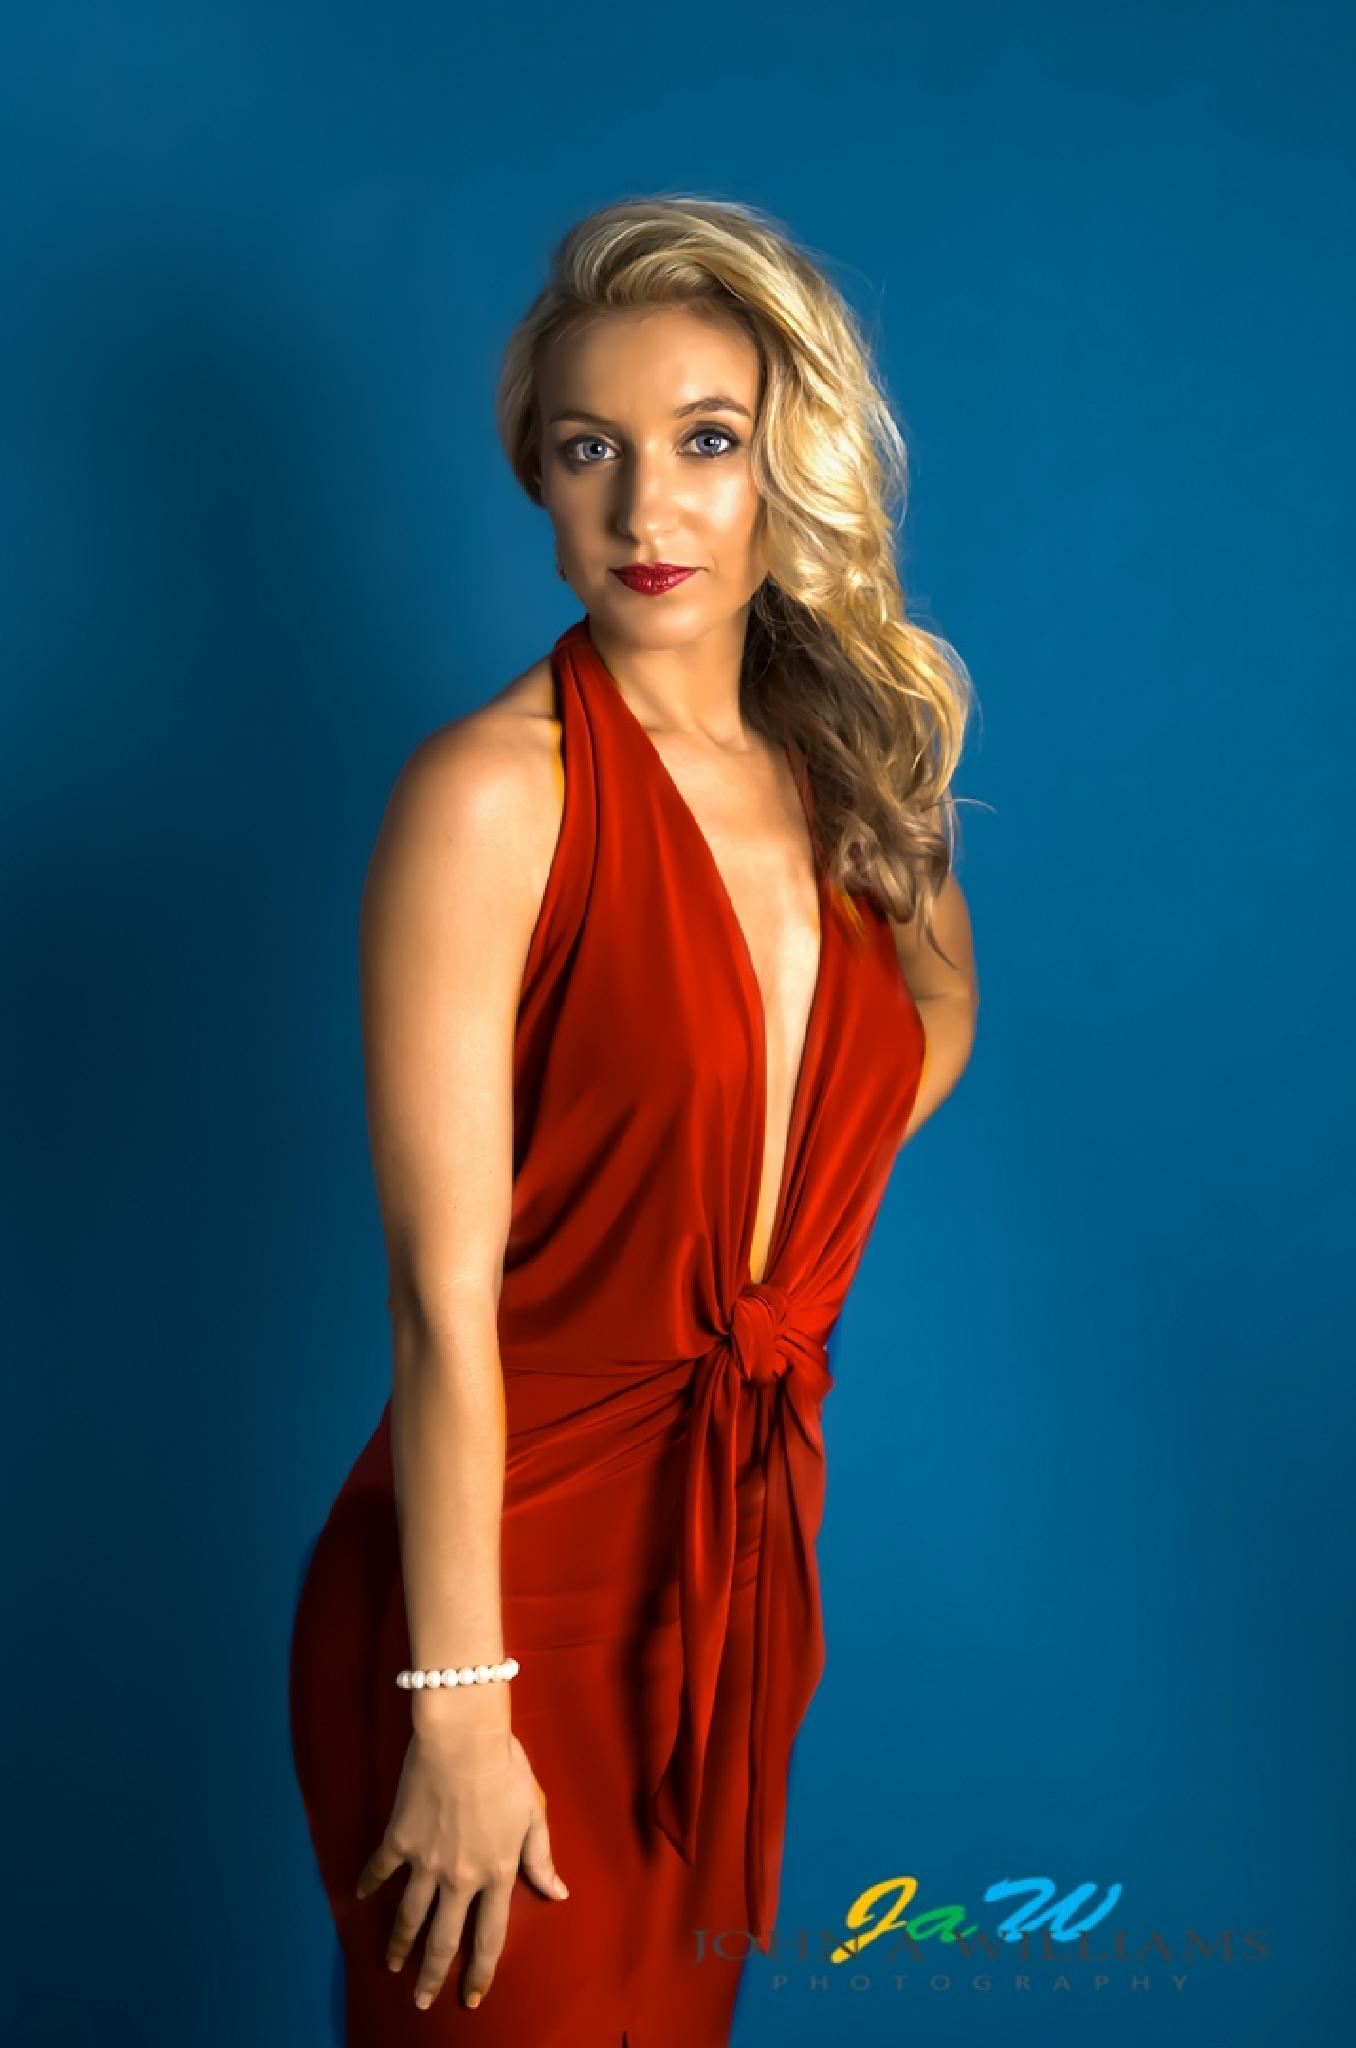 Woman in Red by J A Williams Photography